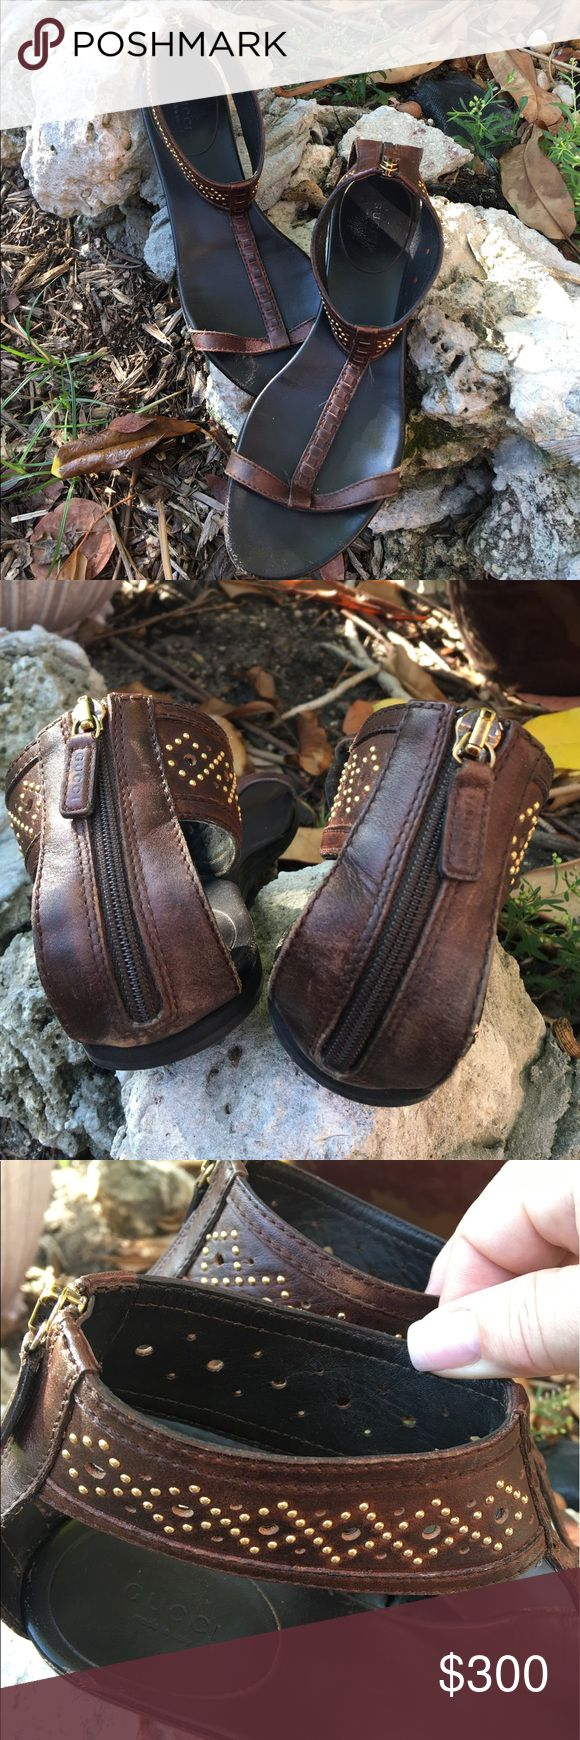 """🆕 💯% authentic Gucci flat gladiator sandals 💯Authentic Gucci flat brown leather w/ gold round stud detailing at ankles Zipper at back. ONLY signs of wear at the toe & small one on inside by heel when your foot is in them you can't see it. See pix Size marking is not on them- they measure 10.5"""" which by Gucci website is size 11 (all forums on shoe sizing for Gucci state they run 1/2 size large. My daughter wears a 10 US and they fit so guessing 10-10.5 US. PRICE IS FIRM NO OFFERS NOT…"""